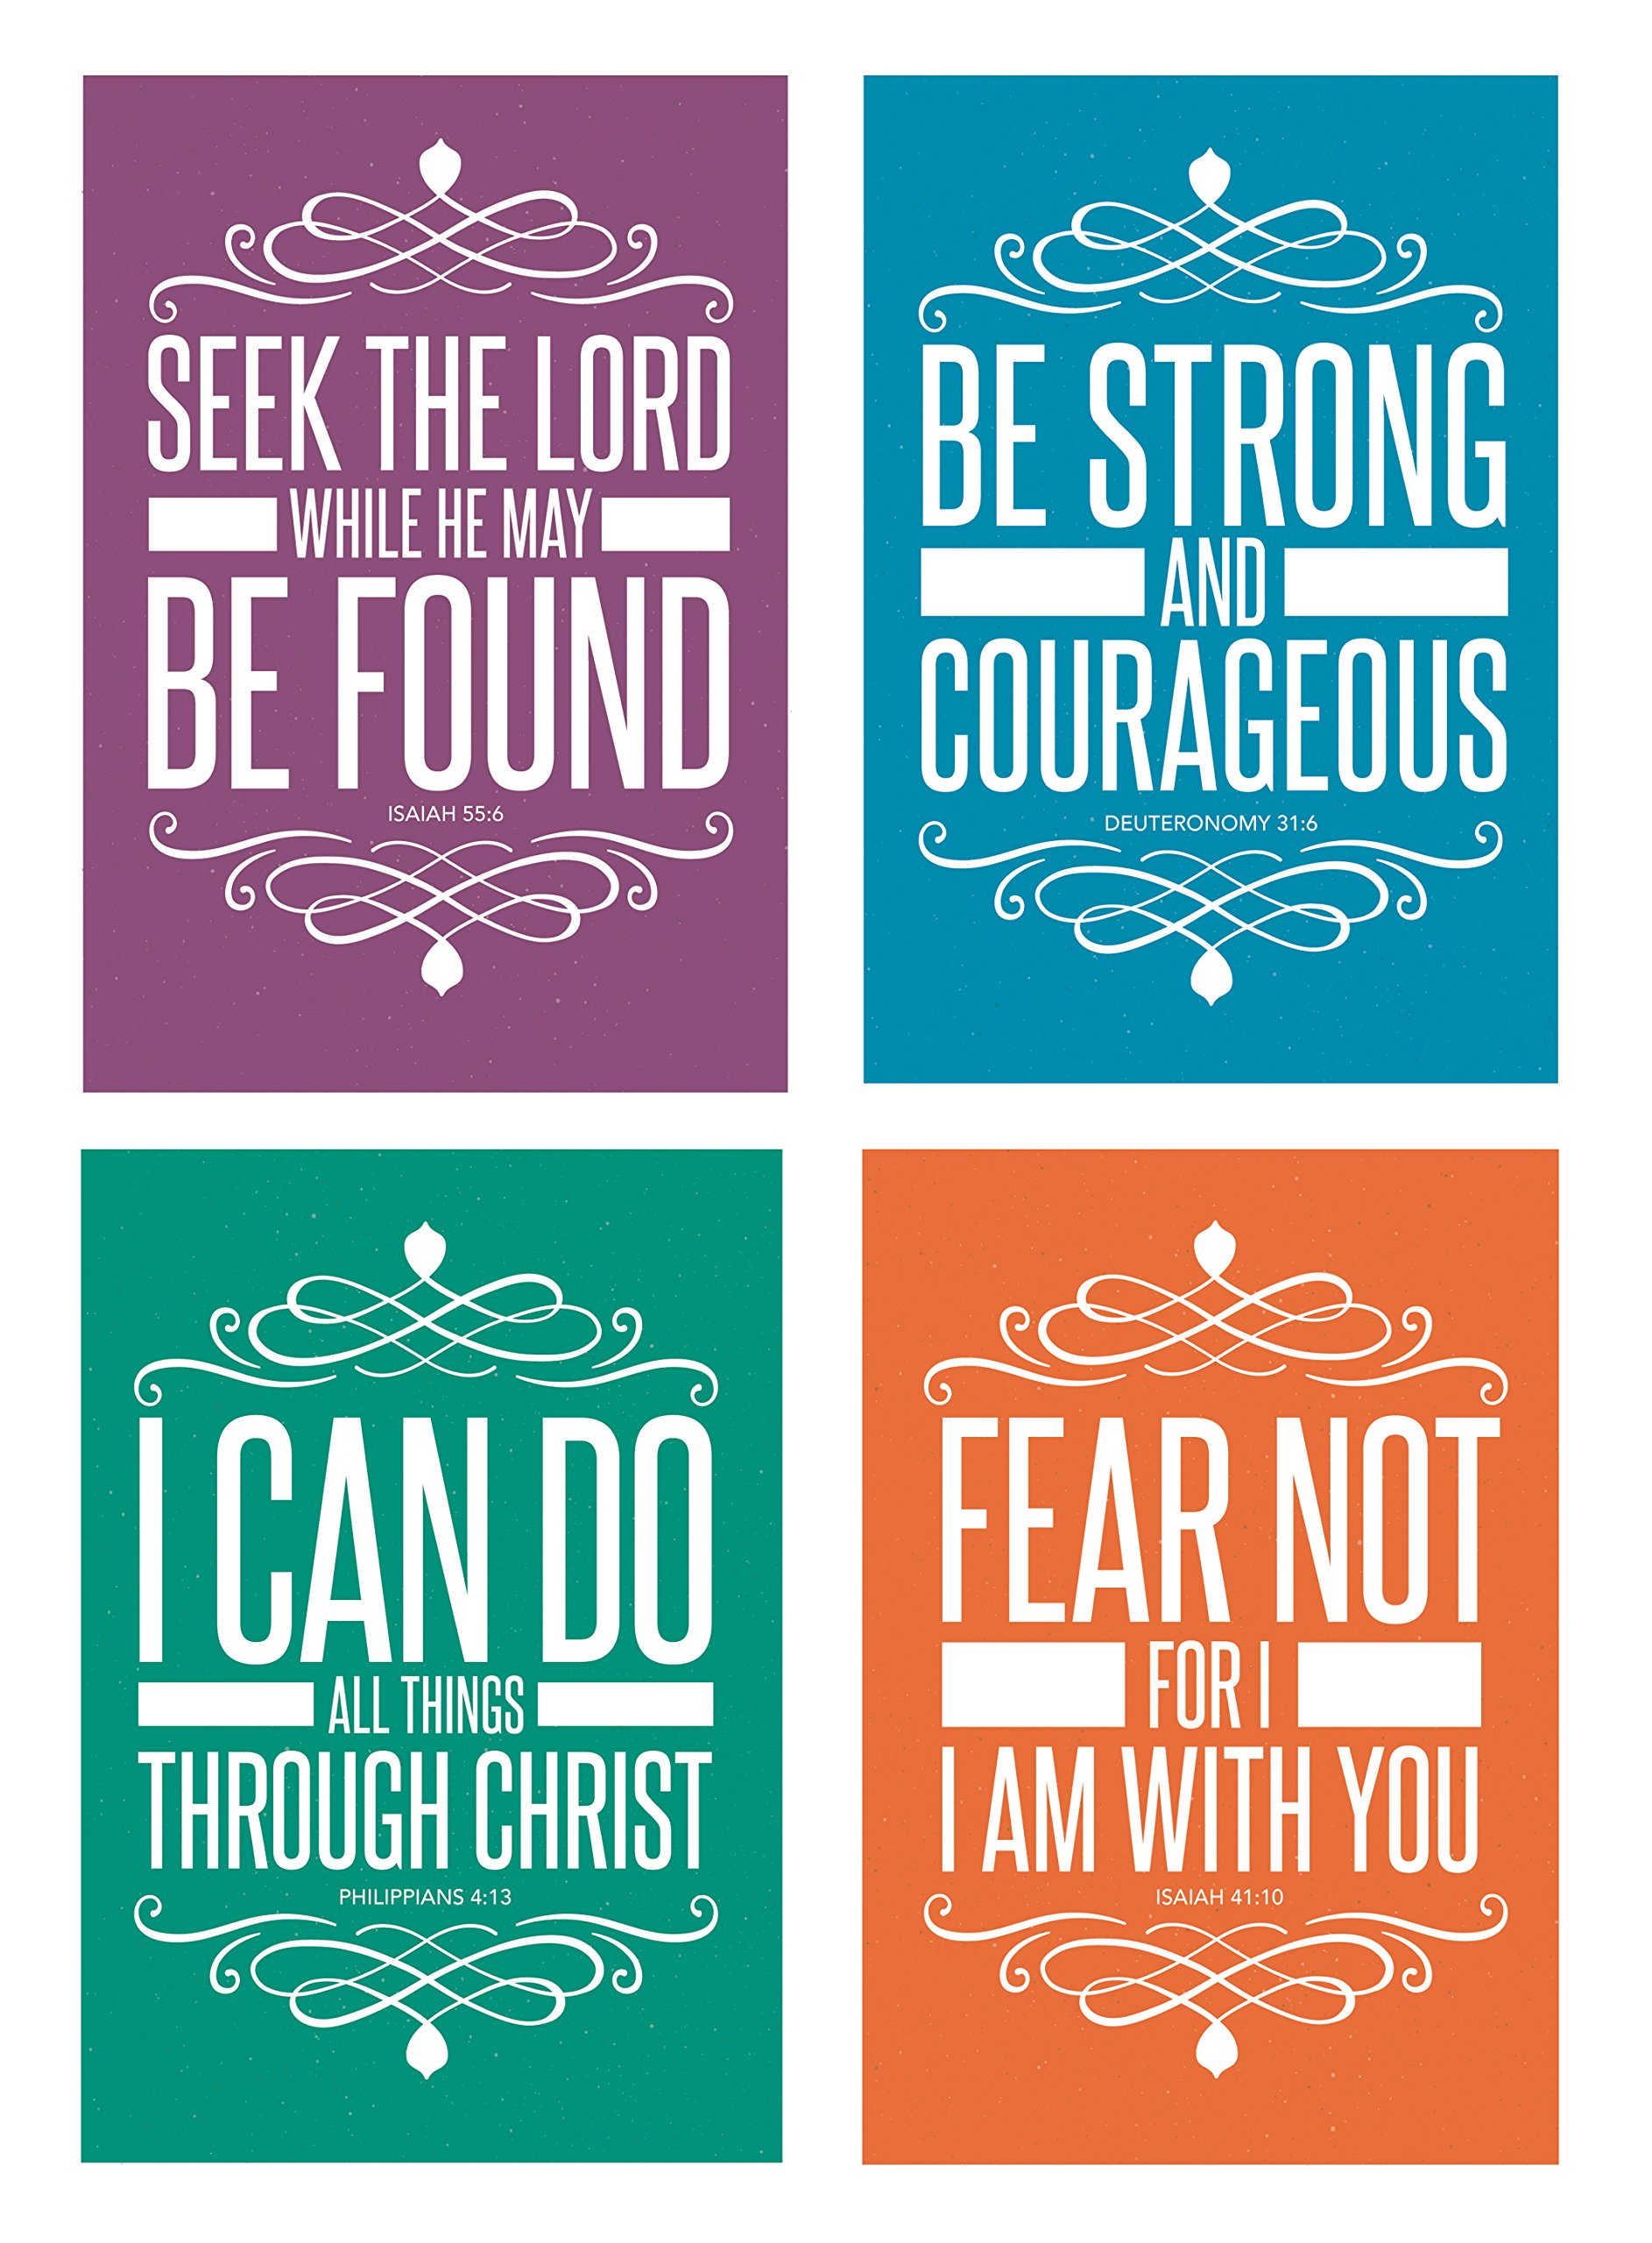 Christian Assorted POSTCARDS (32 Pack) Religious Bible Quotes Scripture Motivational Inspirational Famous Verse Biblical Spiritual Bible Scripture Encouragement (4 x 6 inches) 4 Designs, 8 of each.